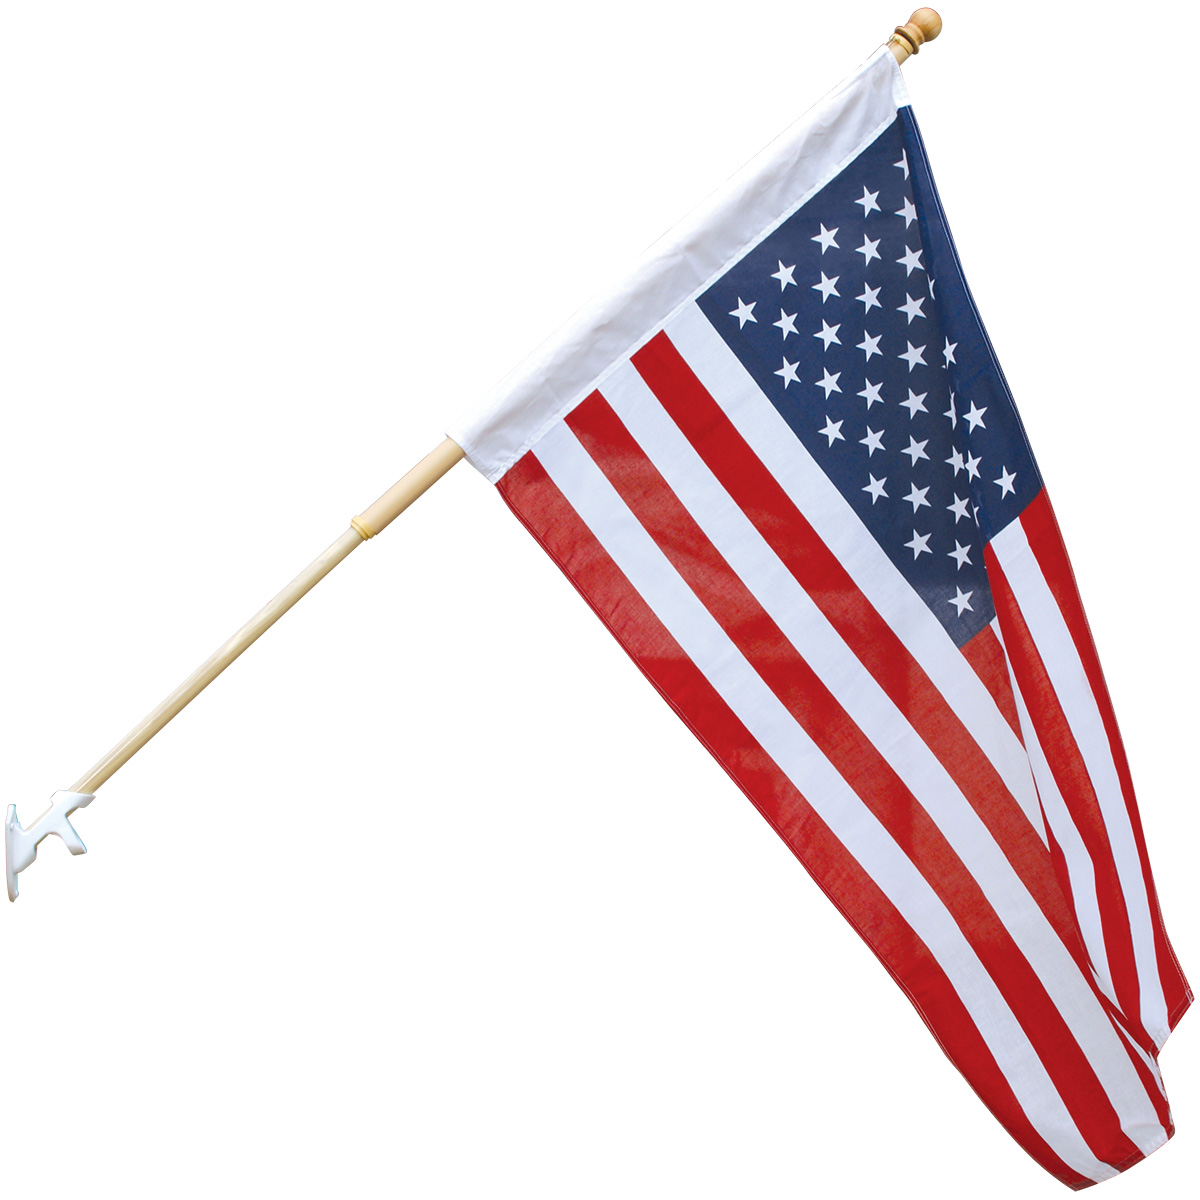 1200x1200 U.s. Outdoor Flags Amp Sets